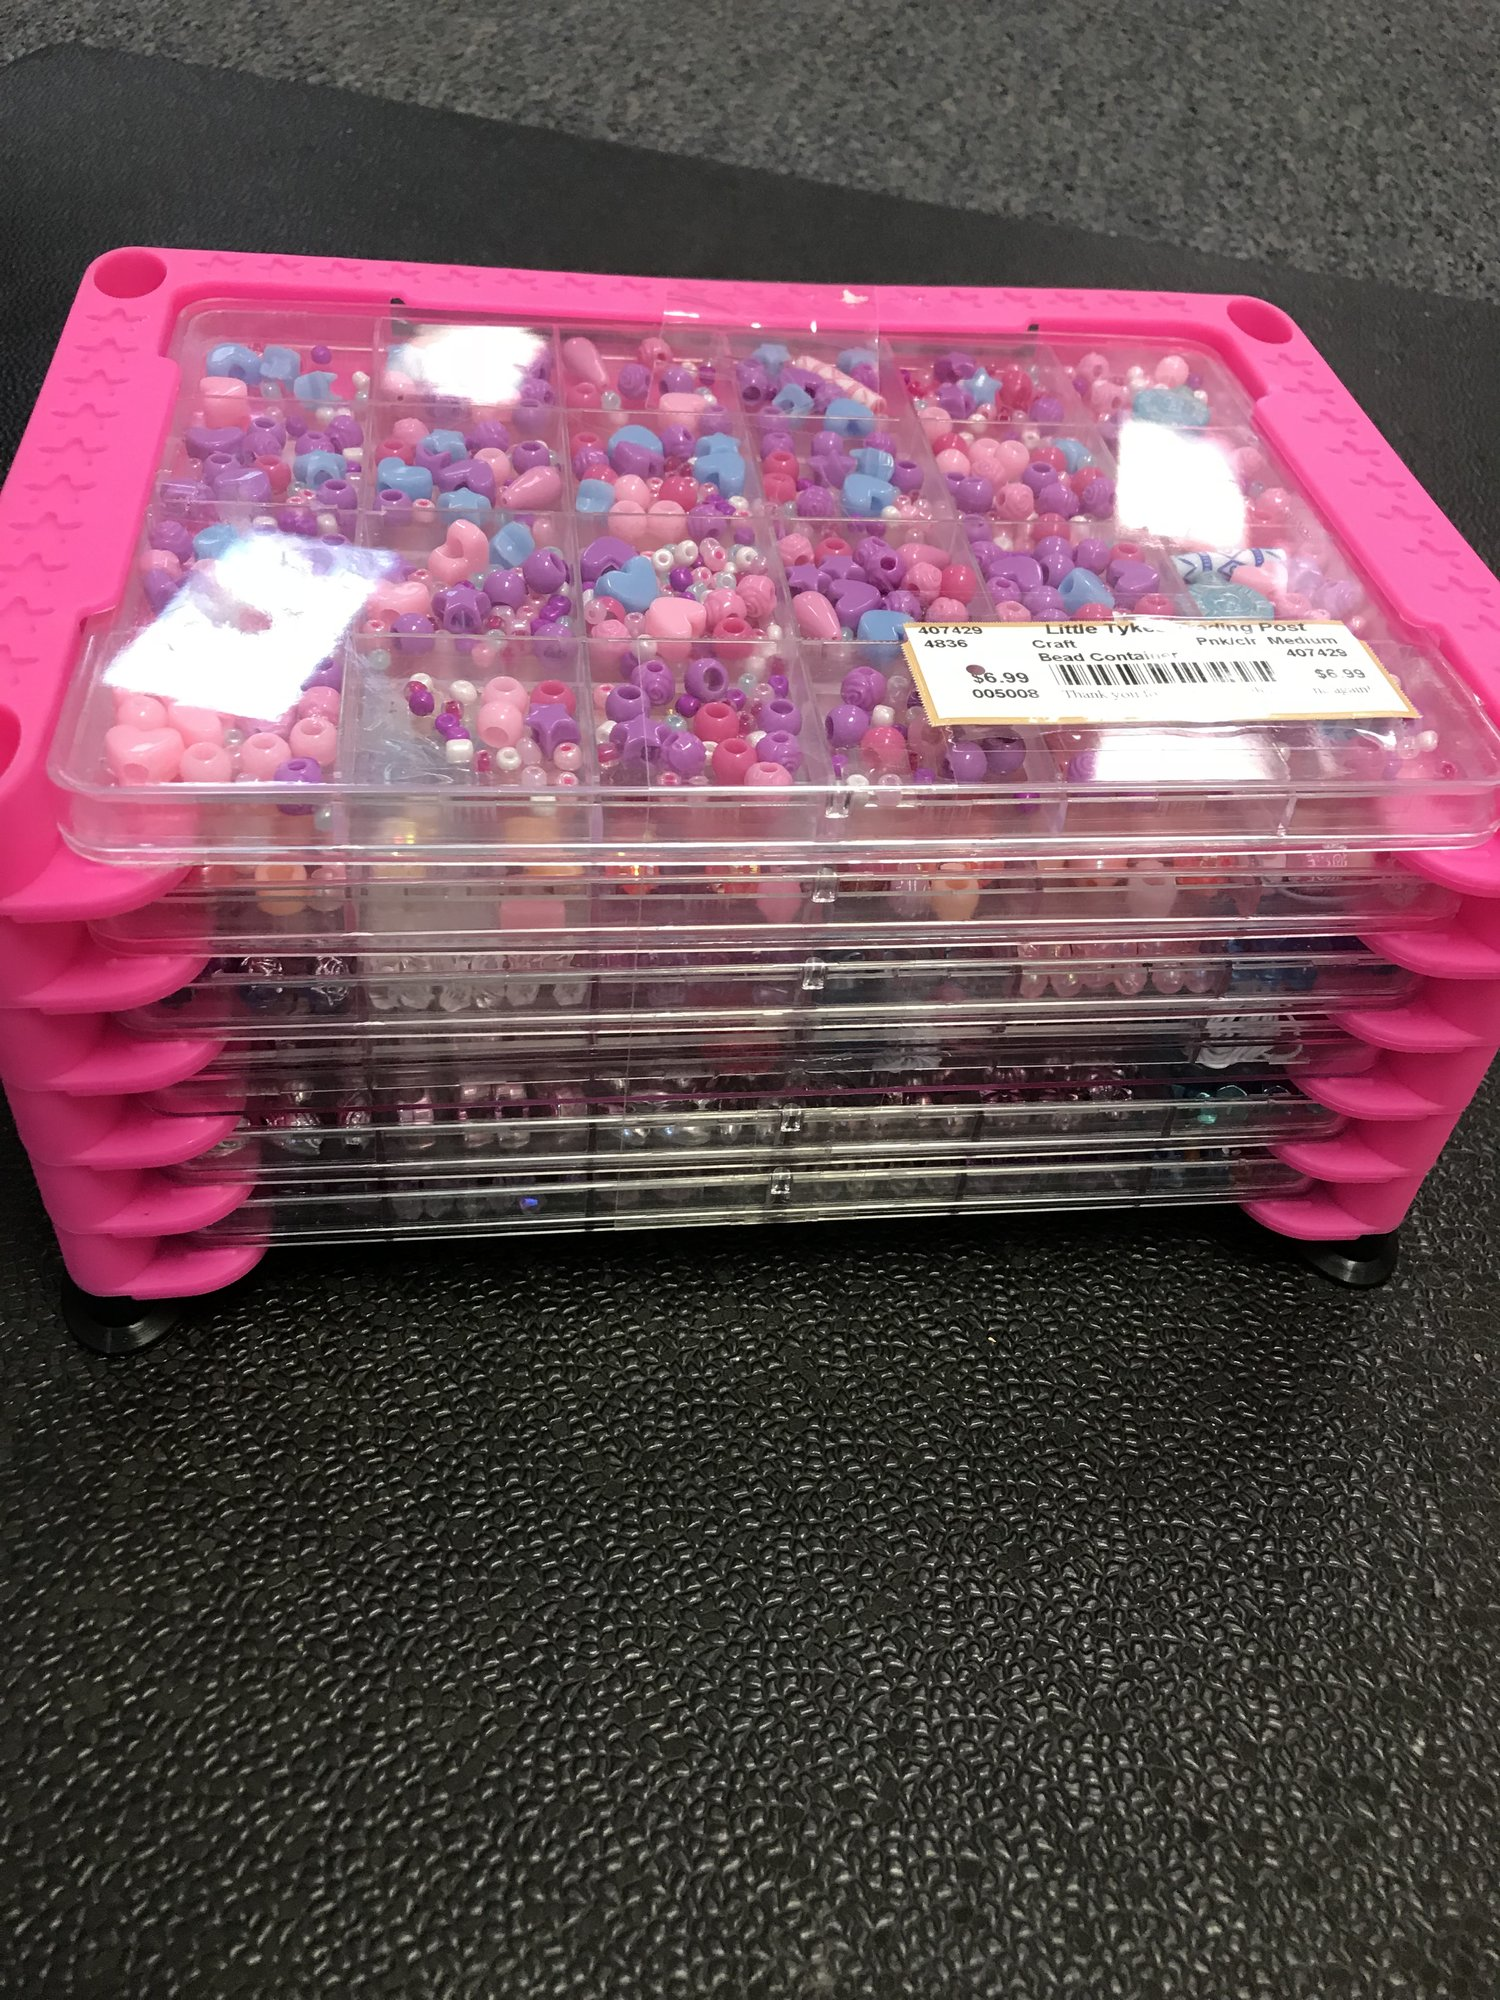 Plastic Bead Container w/6 trays filled with beads and supplies.  In excellent condition!  NO SHIPPING